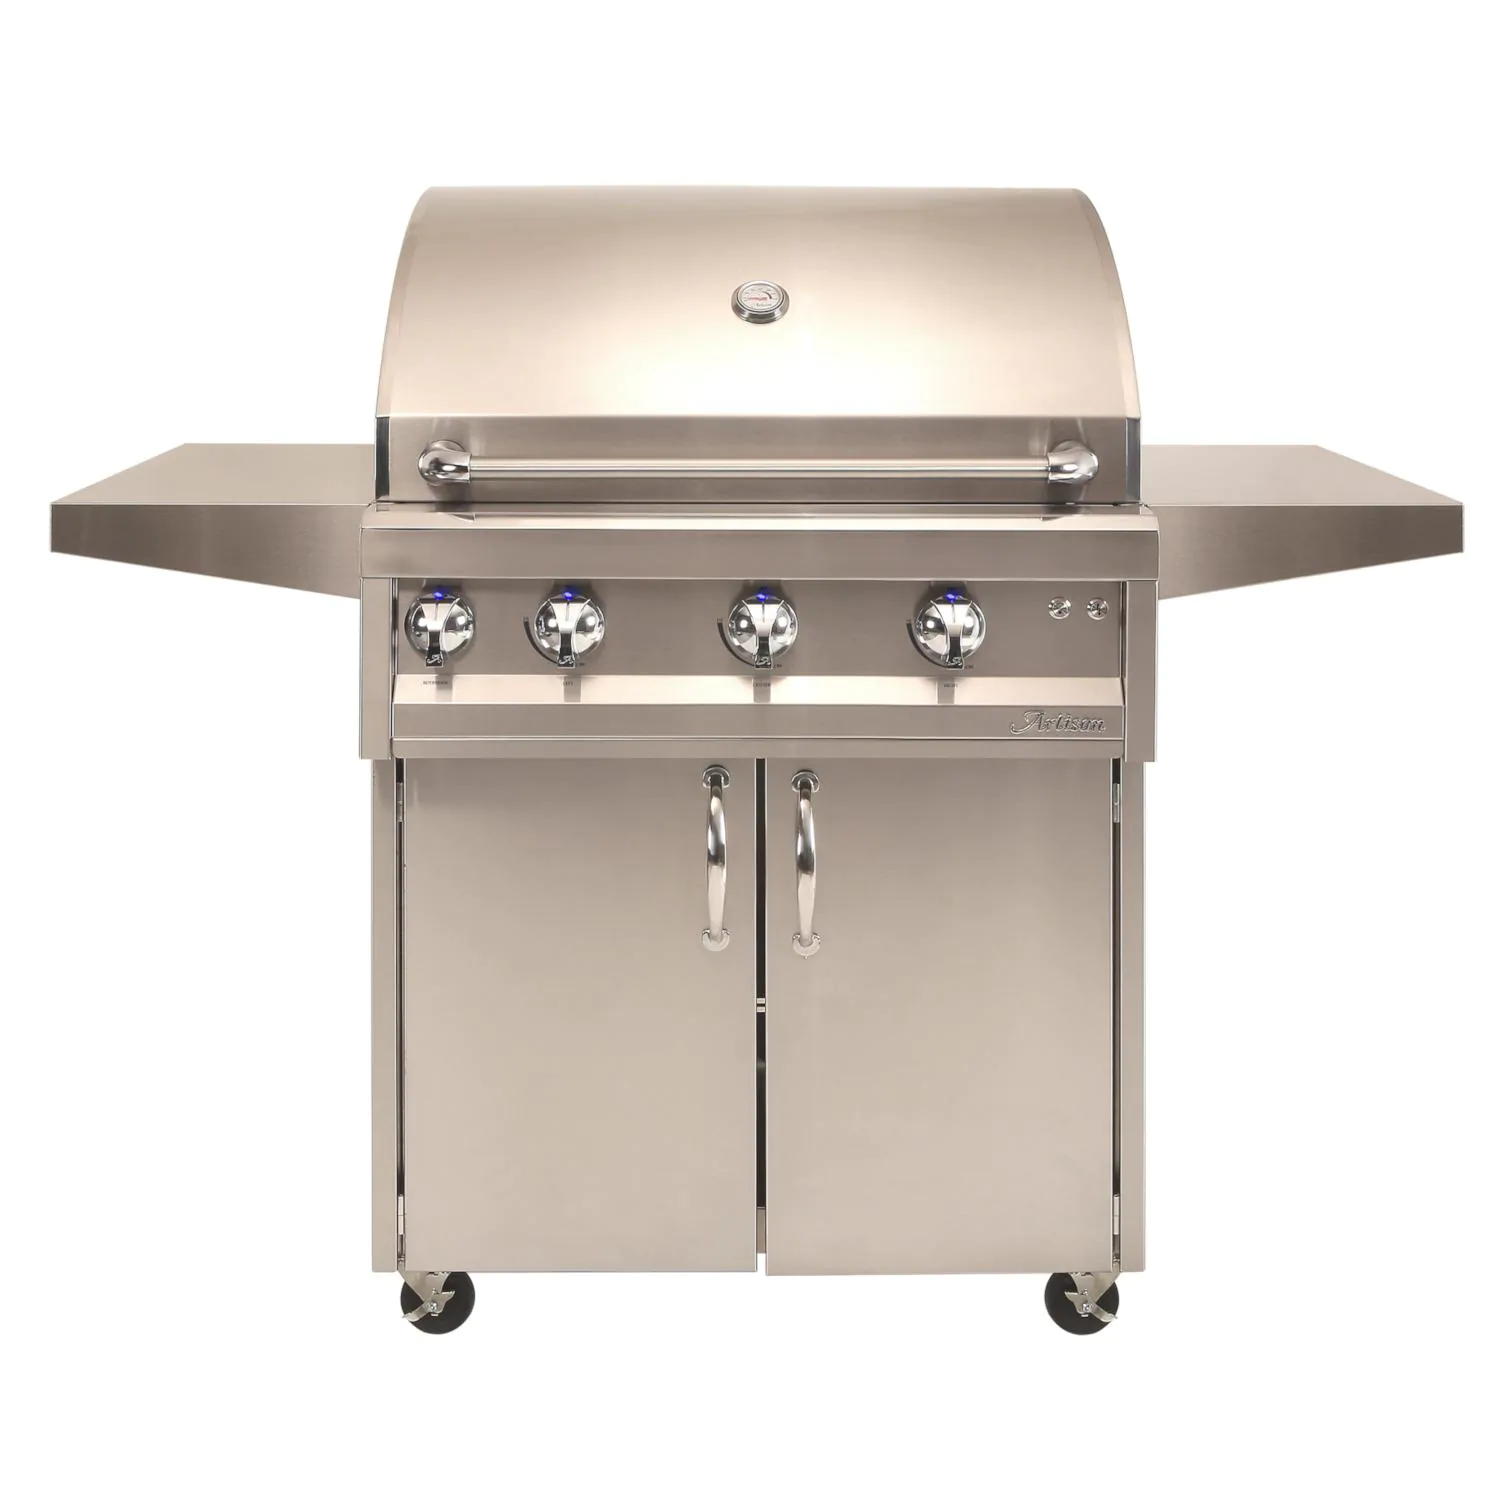 """Artisan Professional 32"""" 3-Burner Freestanding Natural Gas Grill With Rotisserie - ARTP-32C-NG"""